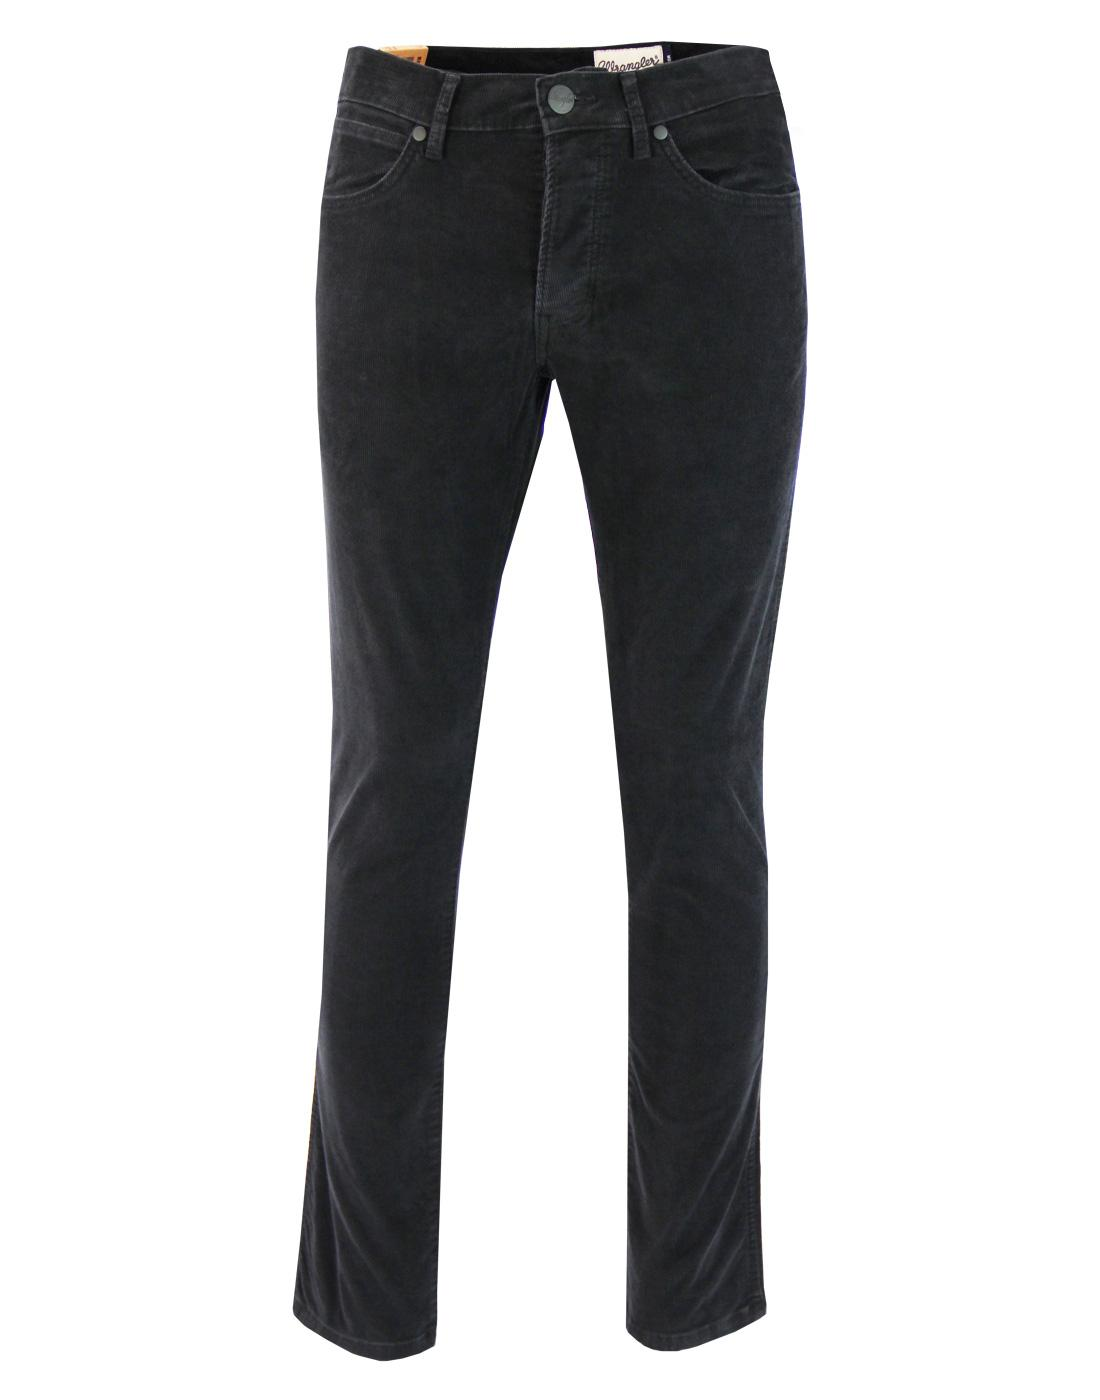 Spencer WRANGLER Black Washed Retro Mod Slim Cords